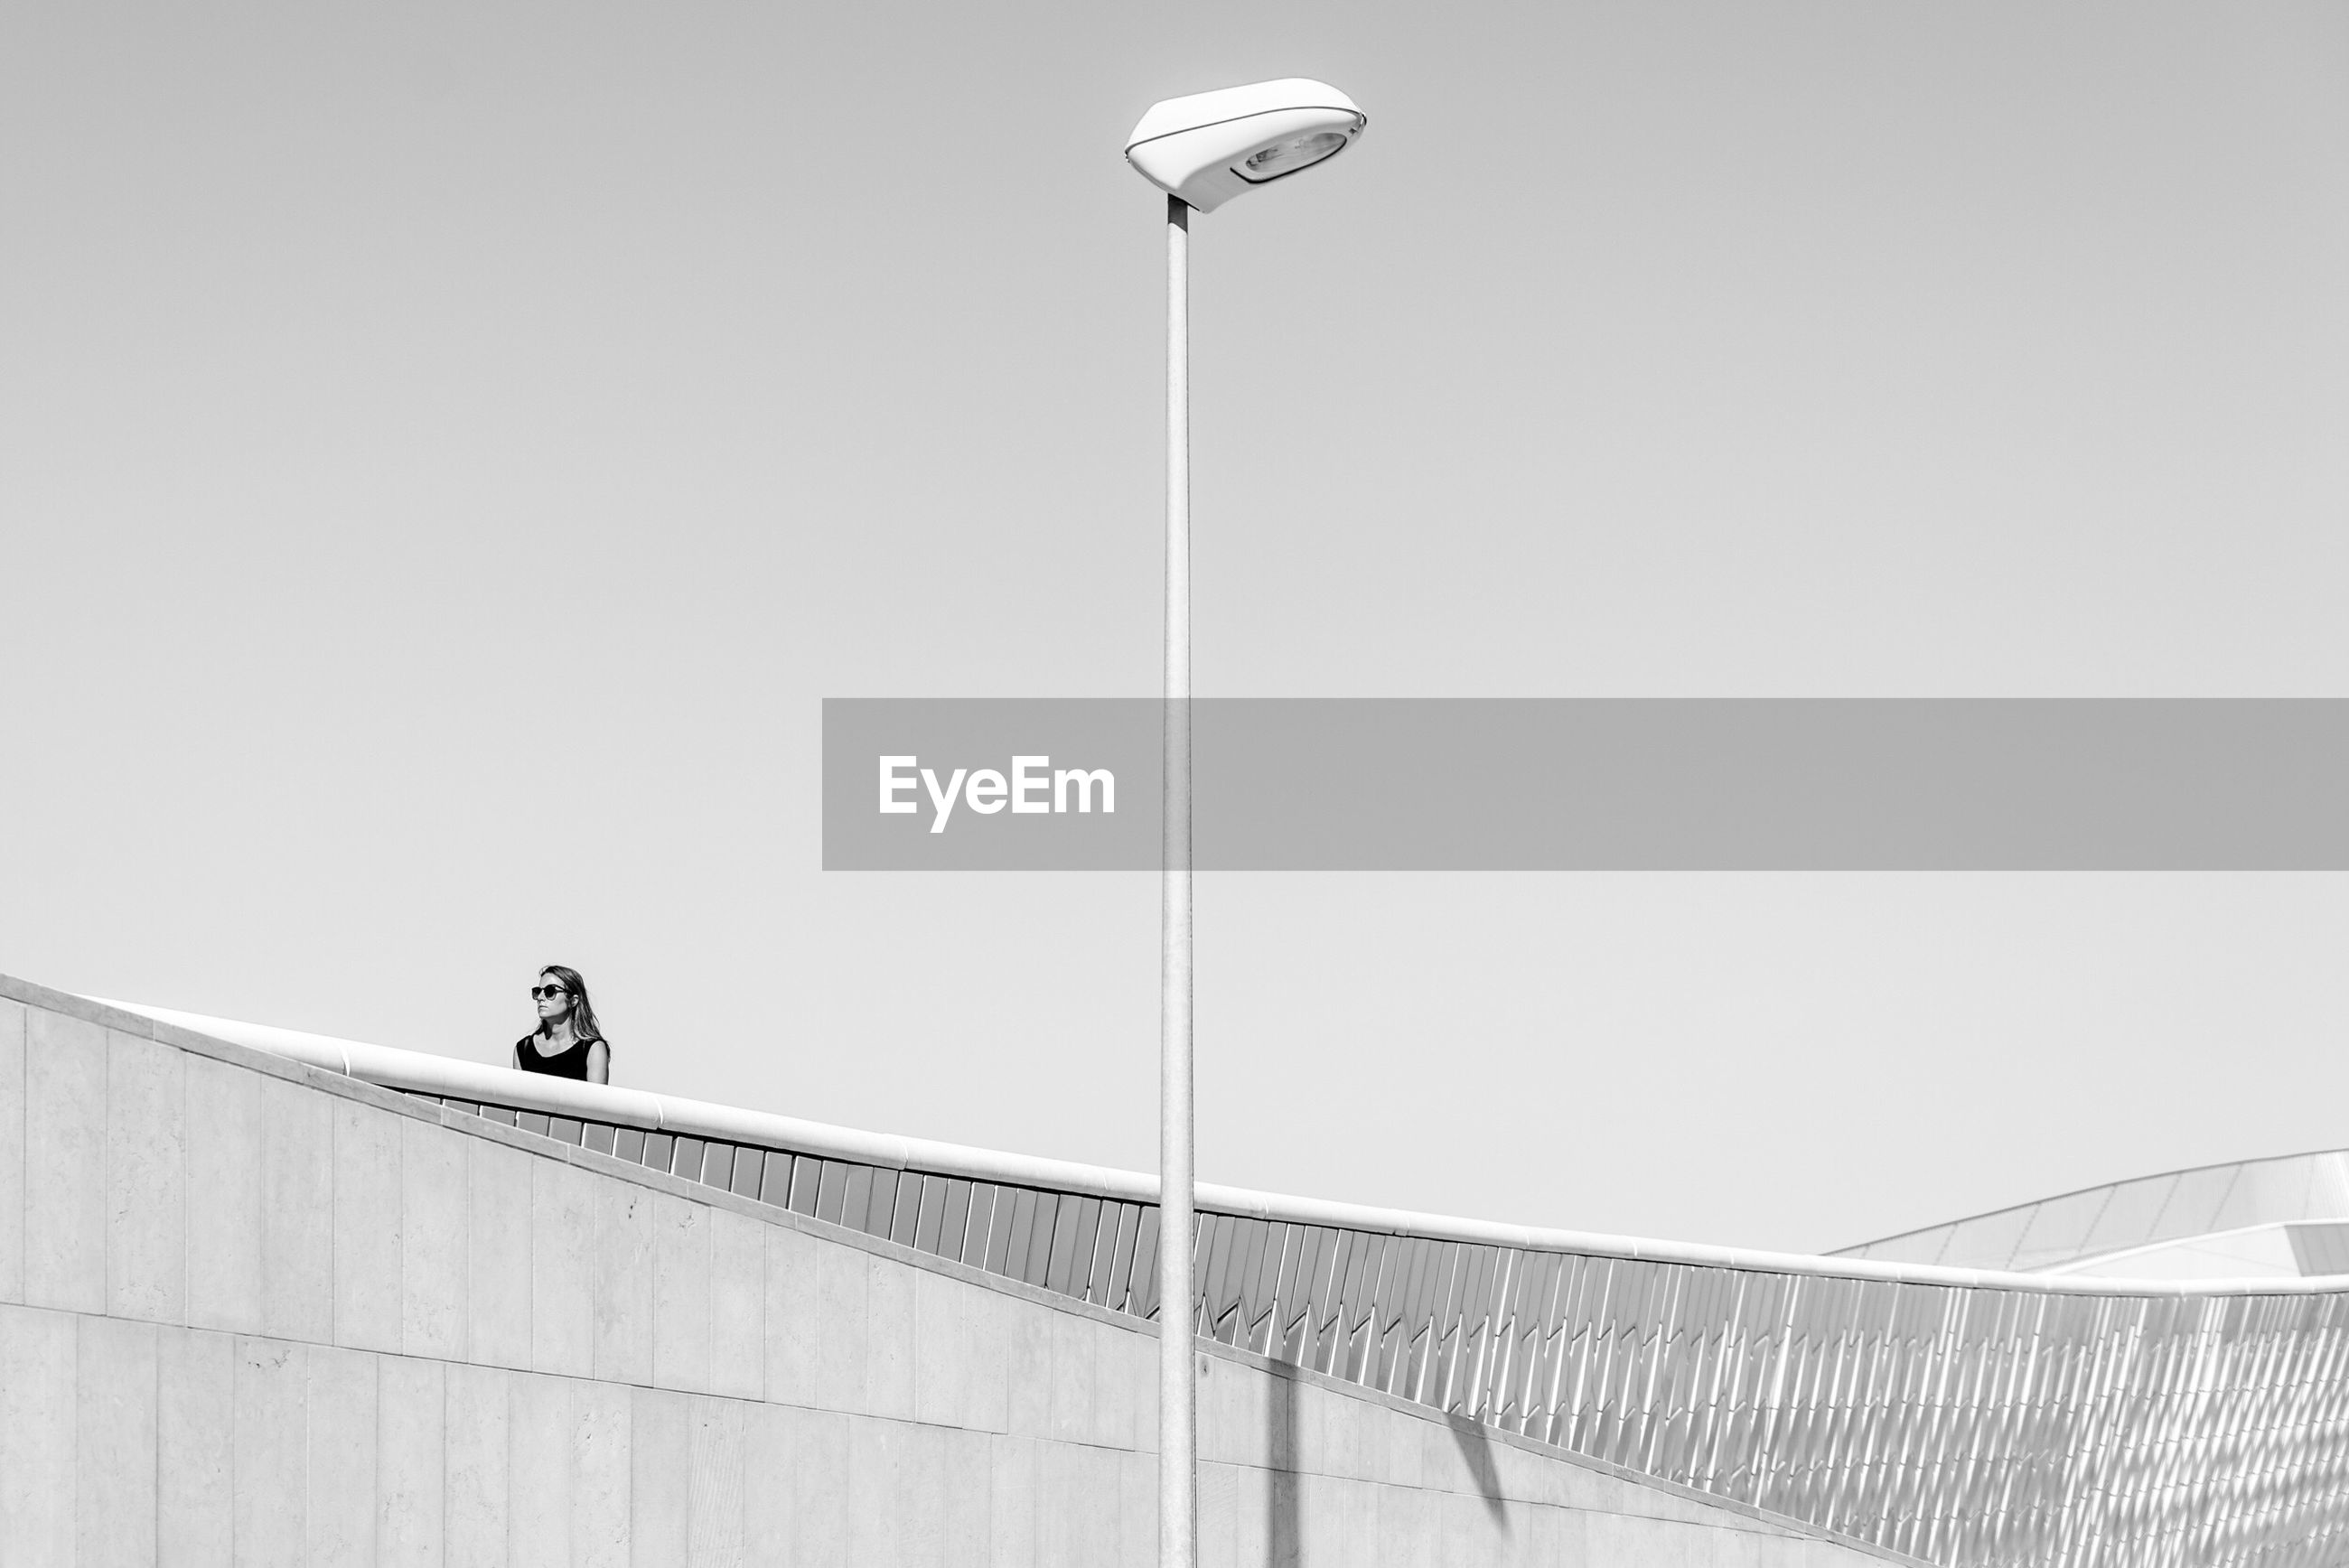 LOW ANGLE VIEW OF WOMAN ON STREET LIGHT AGAINST CLEAR SKY